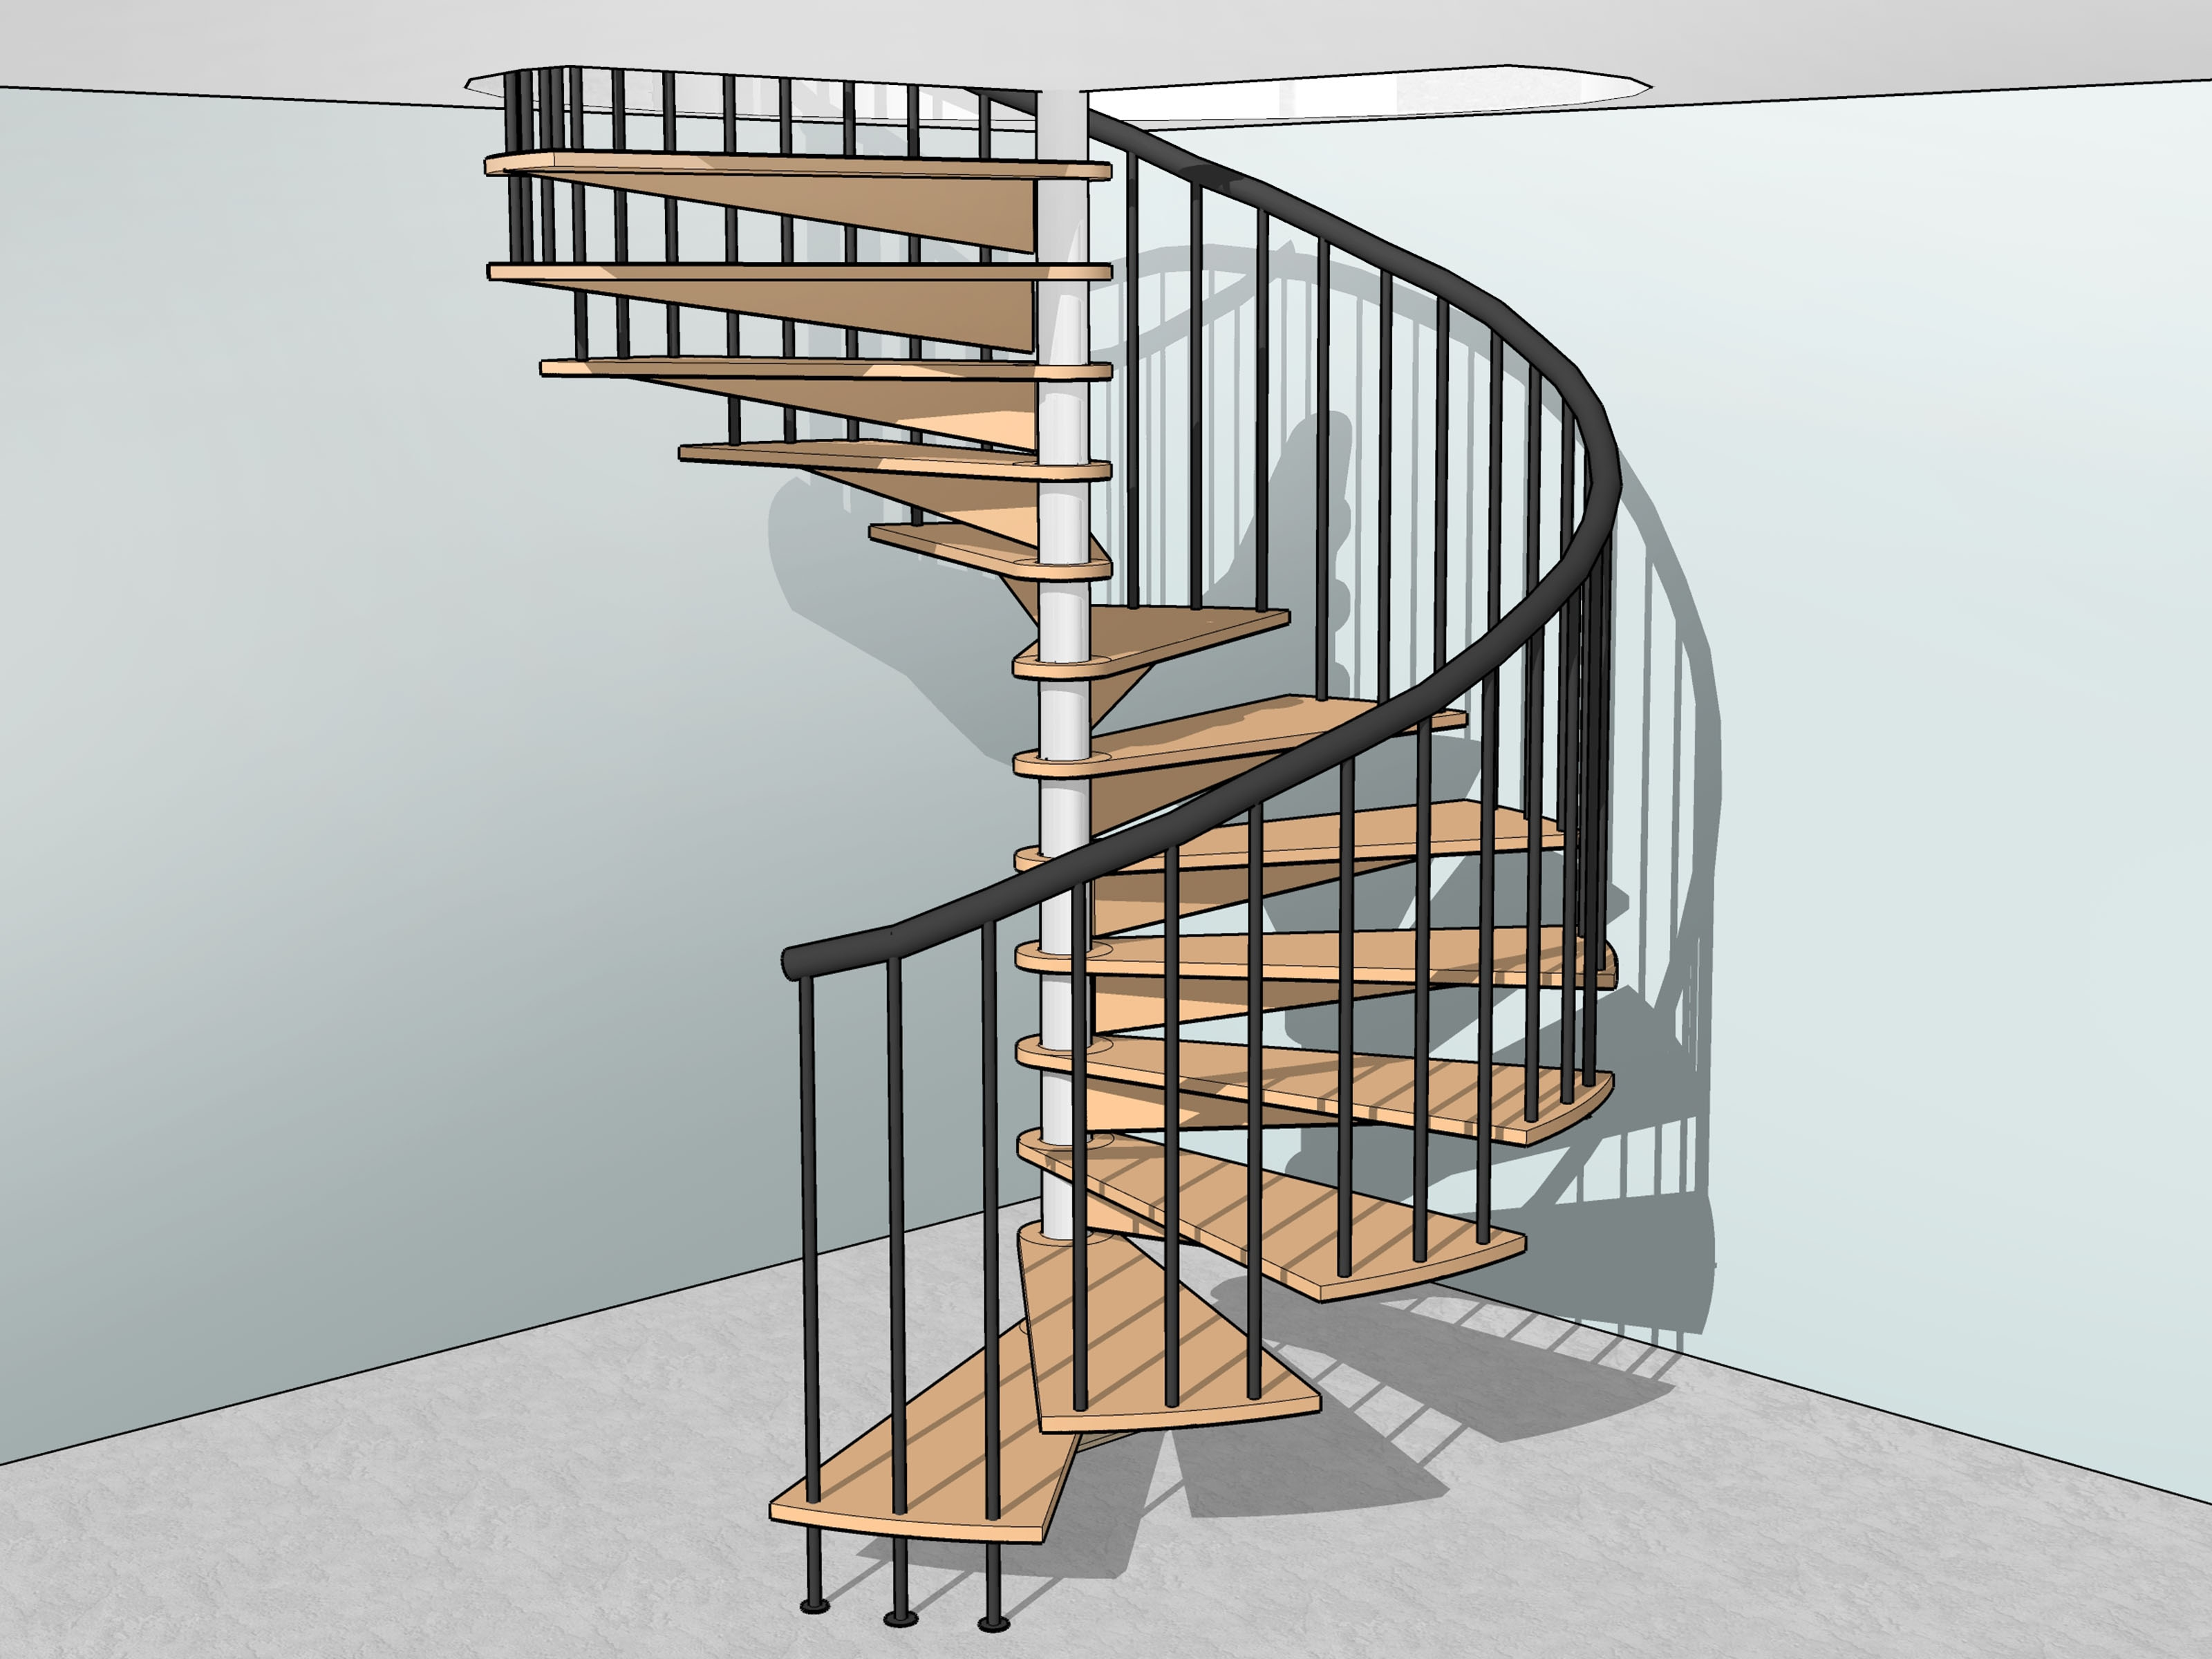 How To Build Spiral Stairs 15 Steps With Pictures Wikihow | Exterior Metal Spiral Staircase | Rustic Metal | Deck | Crystal Handrail | Bar Modern | Railing